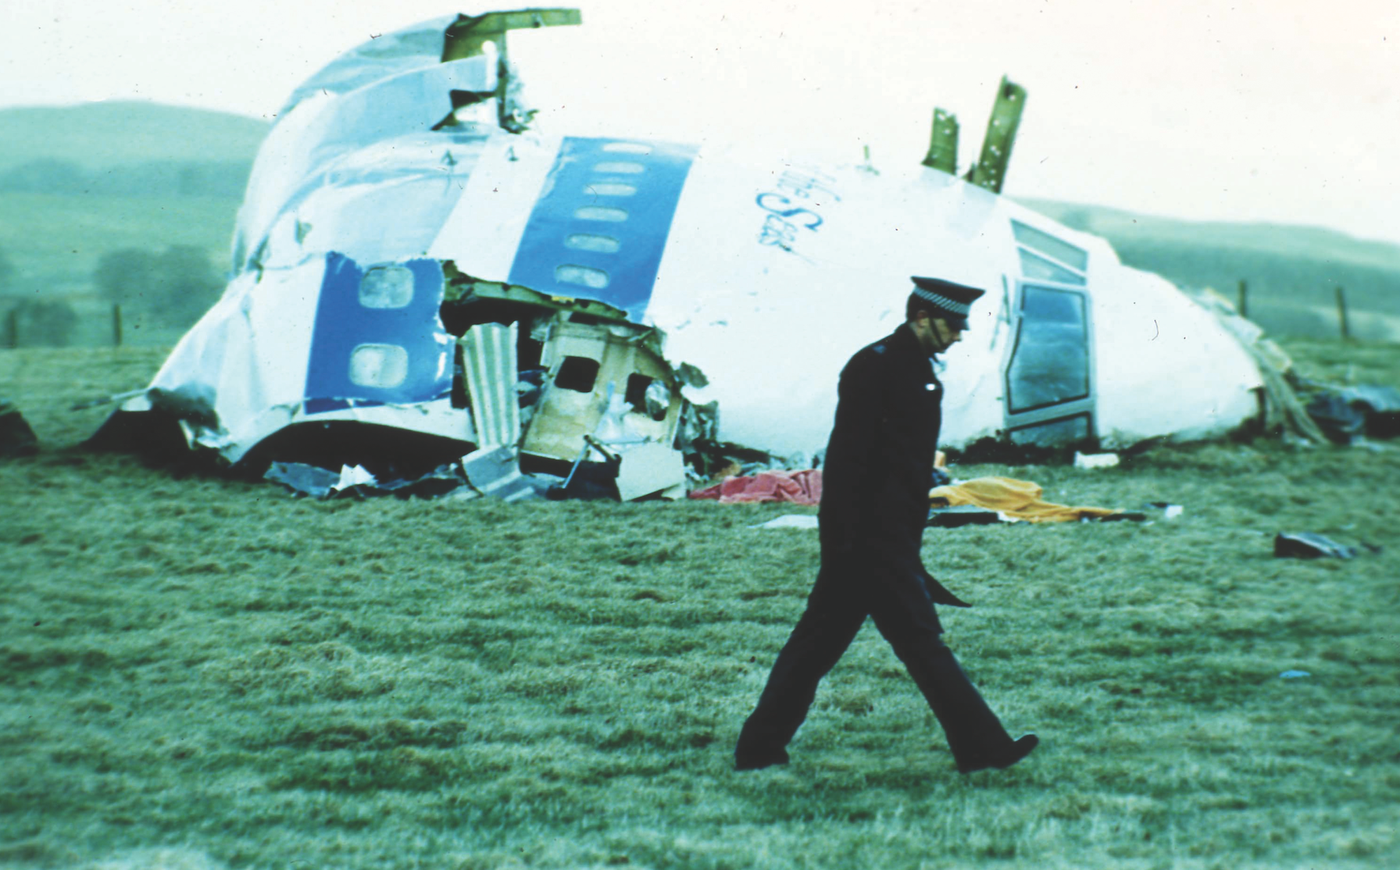 A Scottish police officer searches for clues near the nose of the downed Pan Am Flight 103 on a farm outside of Lockerbie in December 1988. AP Photo.